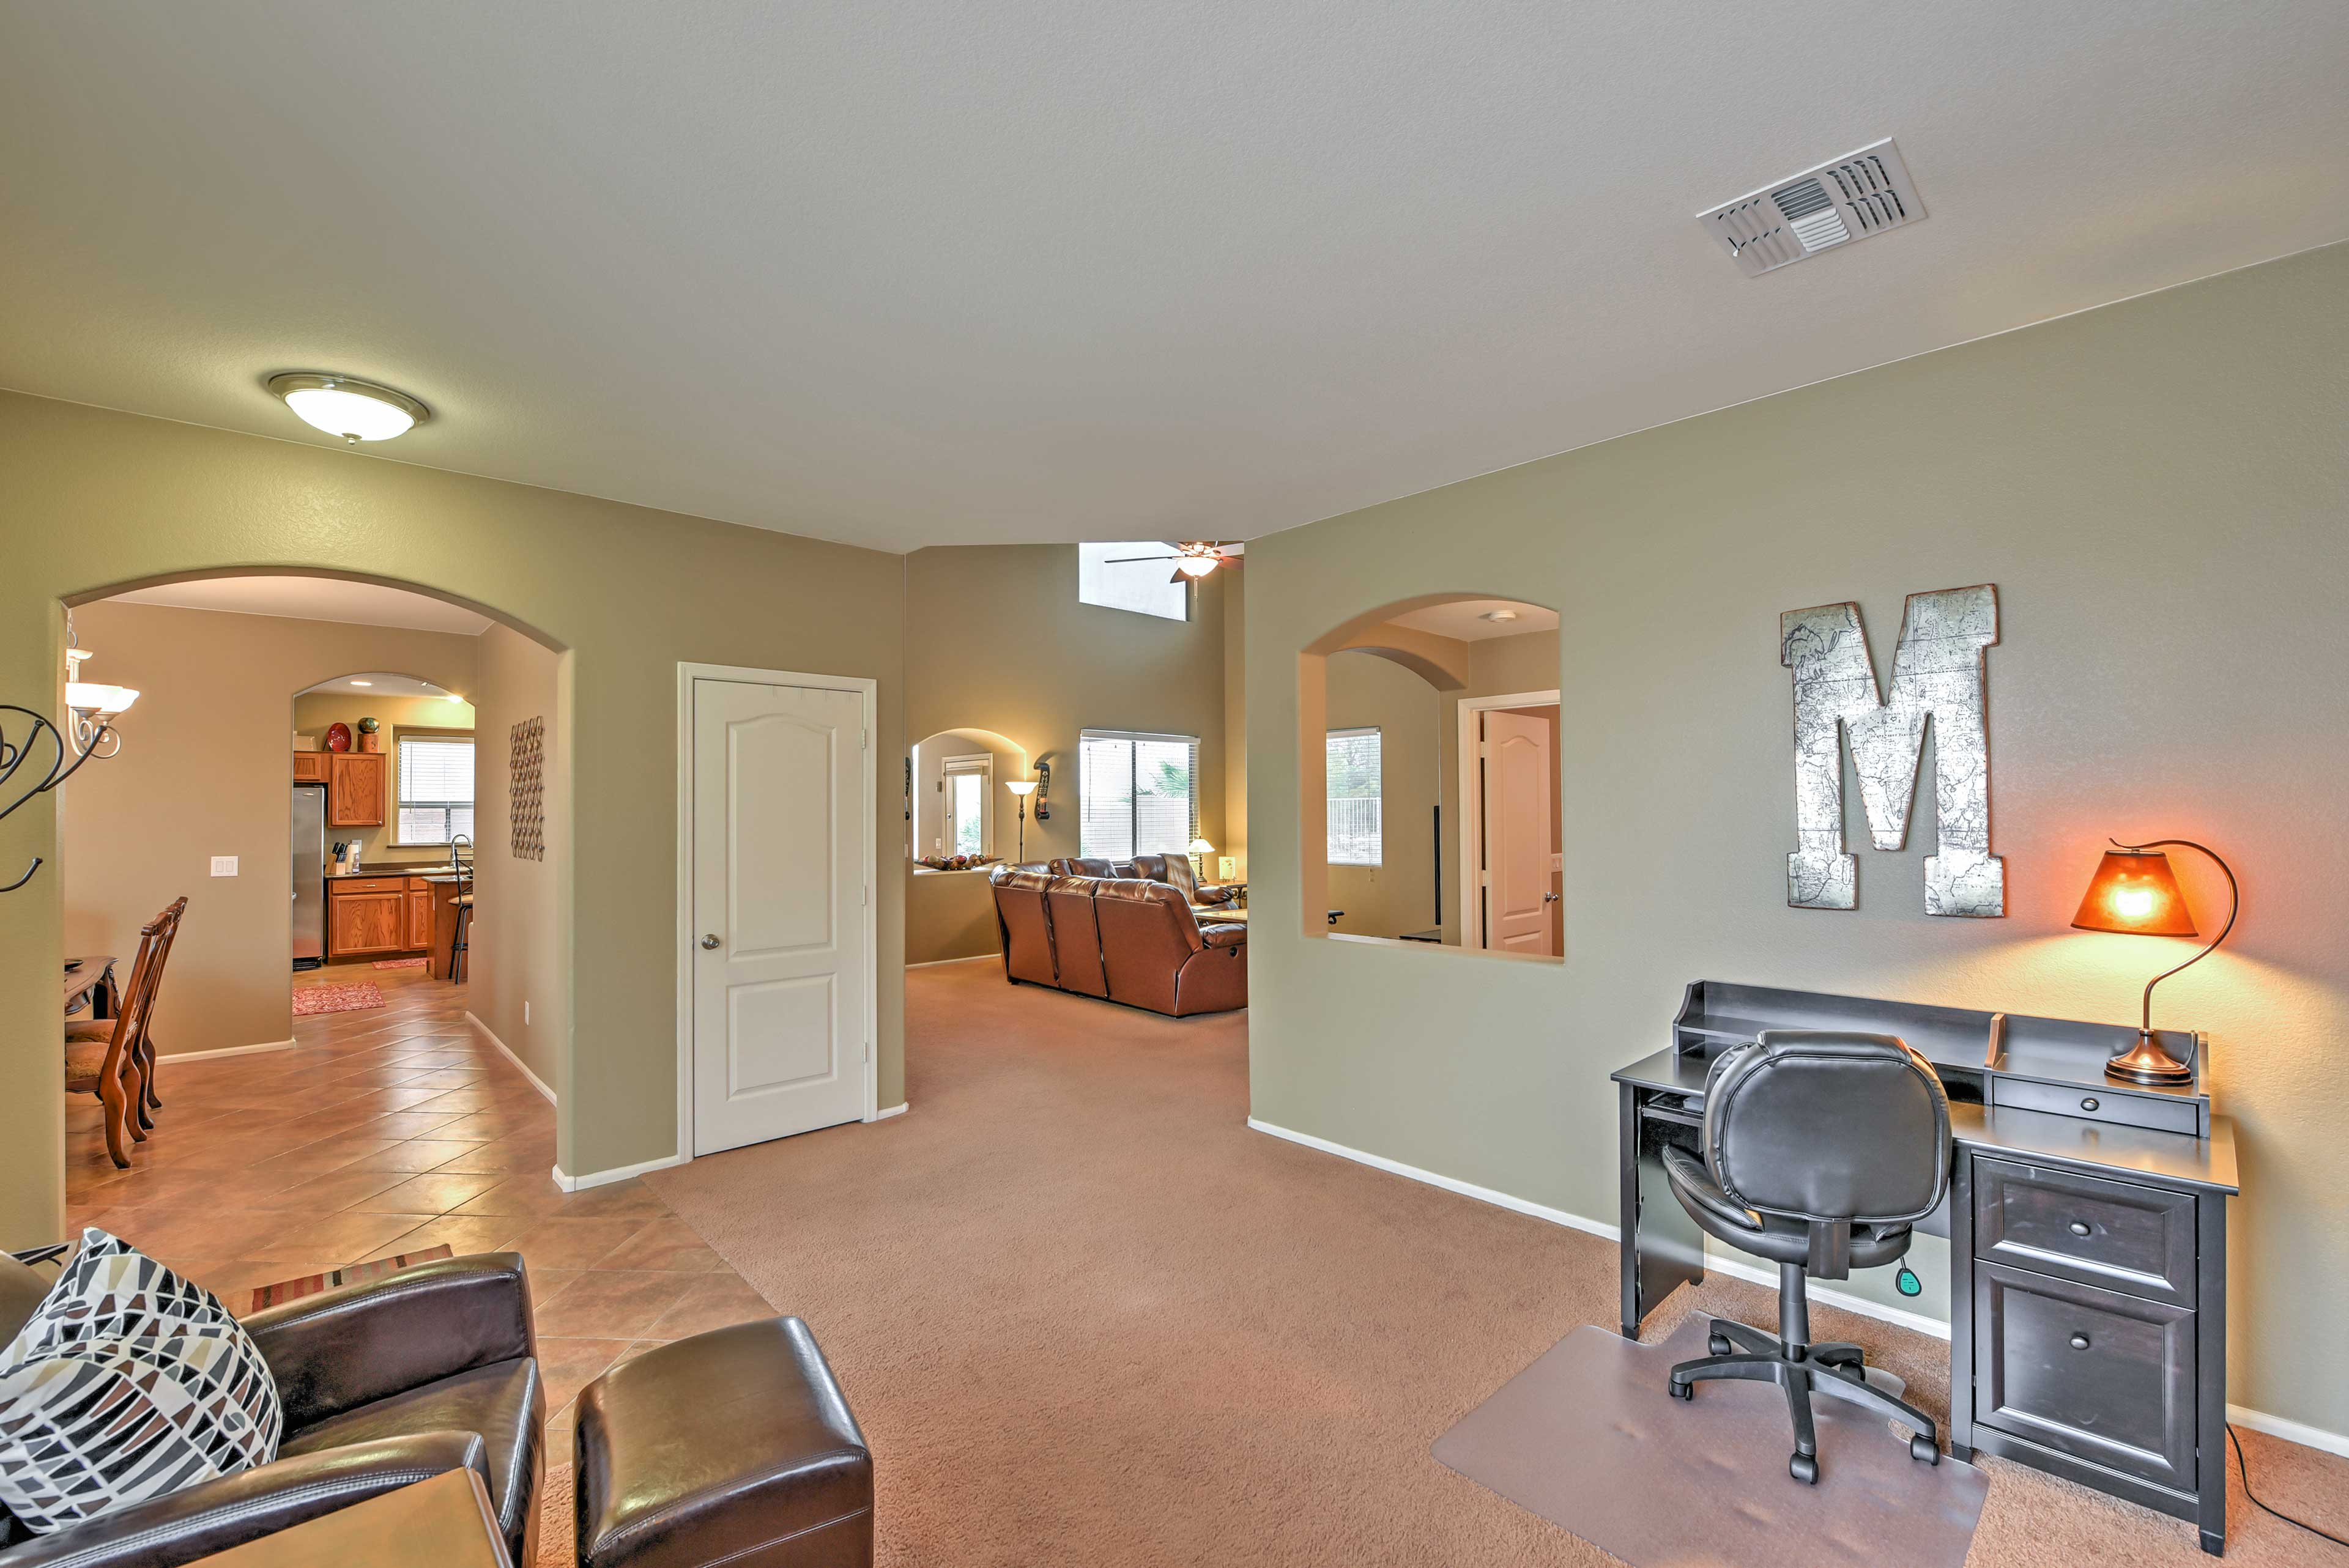 The interior of the home offers 3,000 square feet of living space.